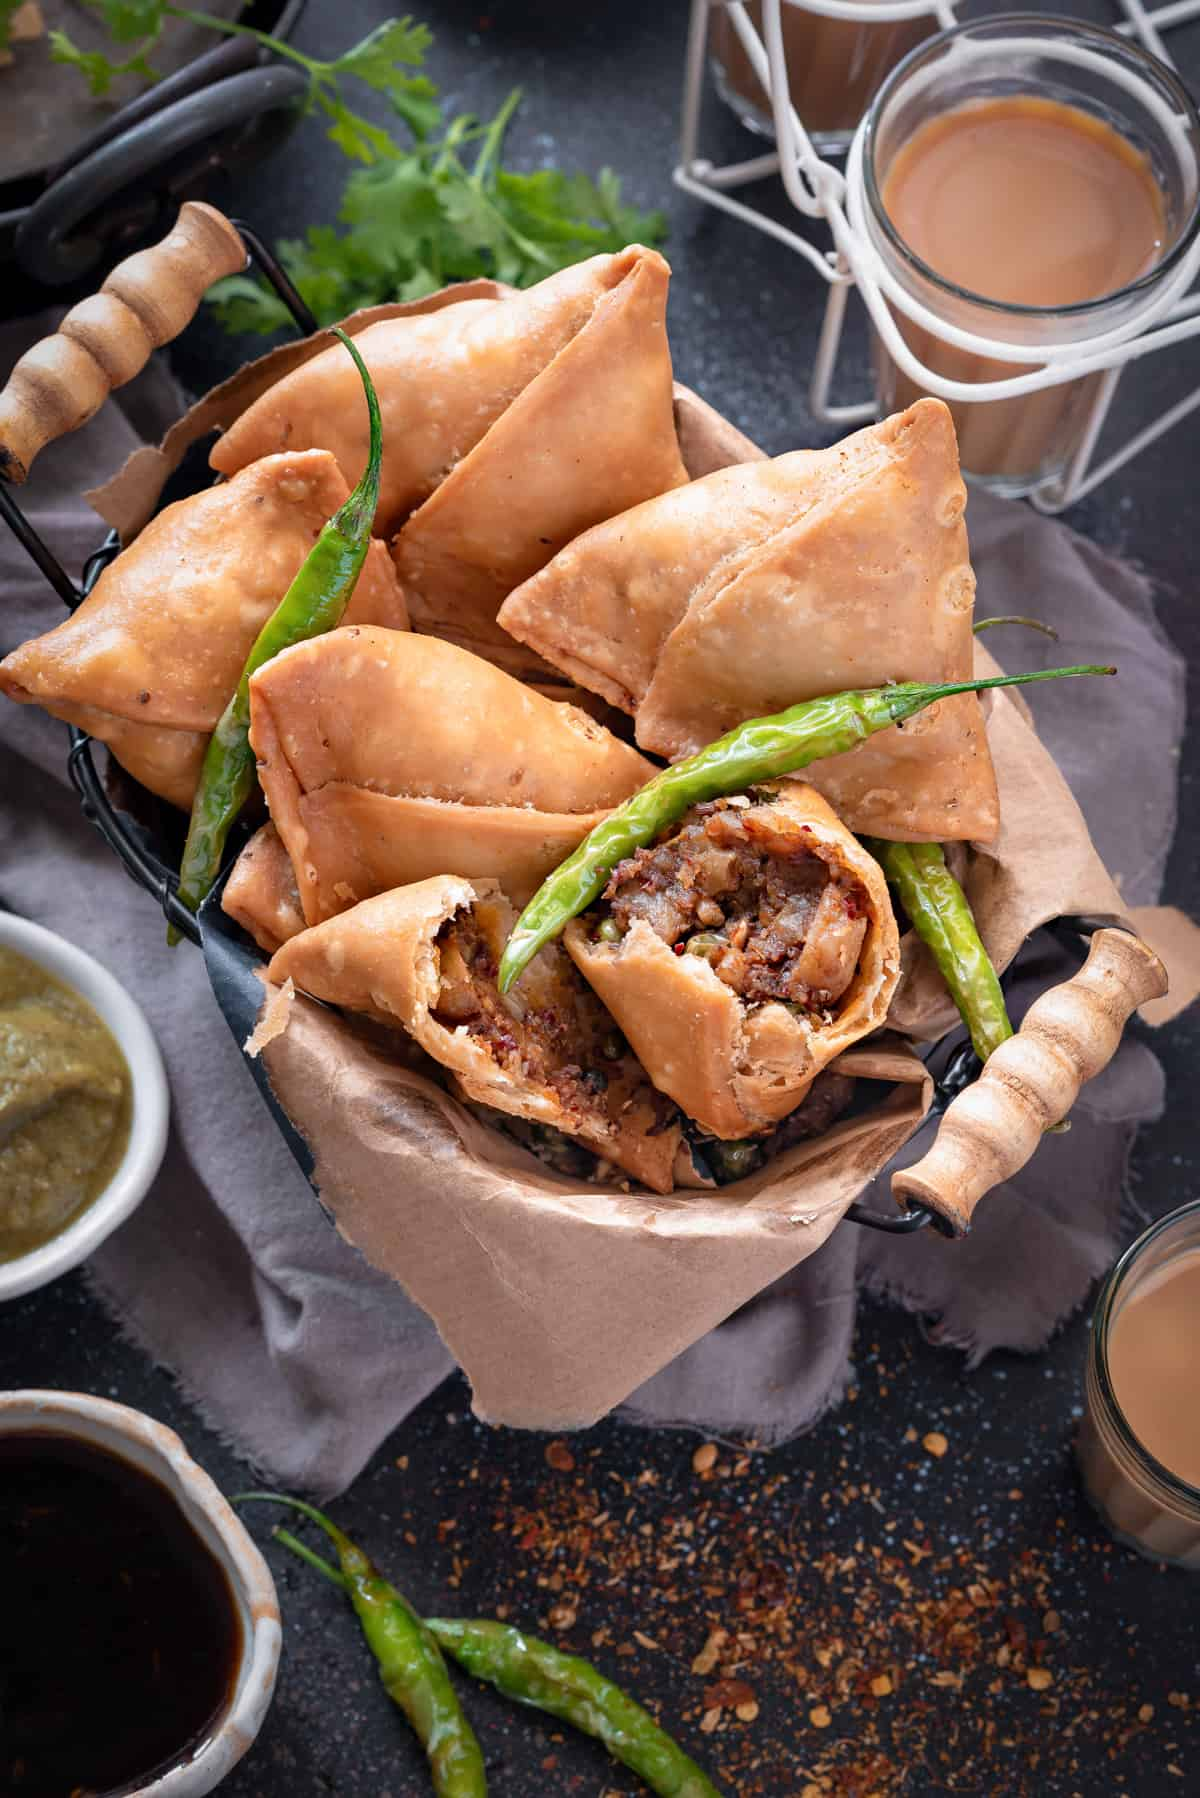 Flaky samosas in basket with one samosa cut open to show the filling within.